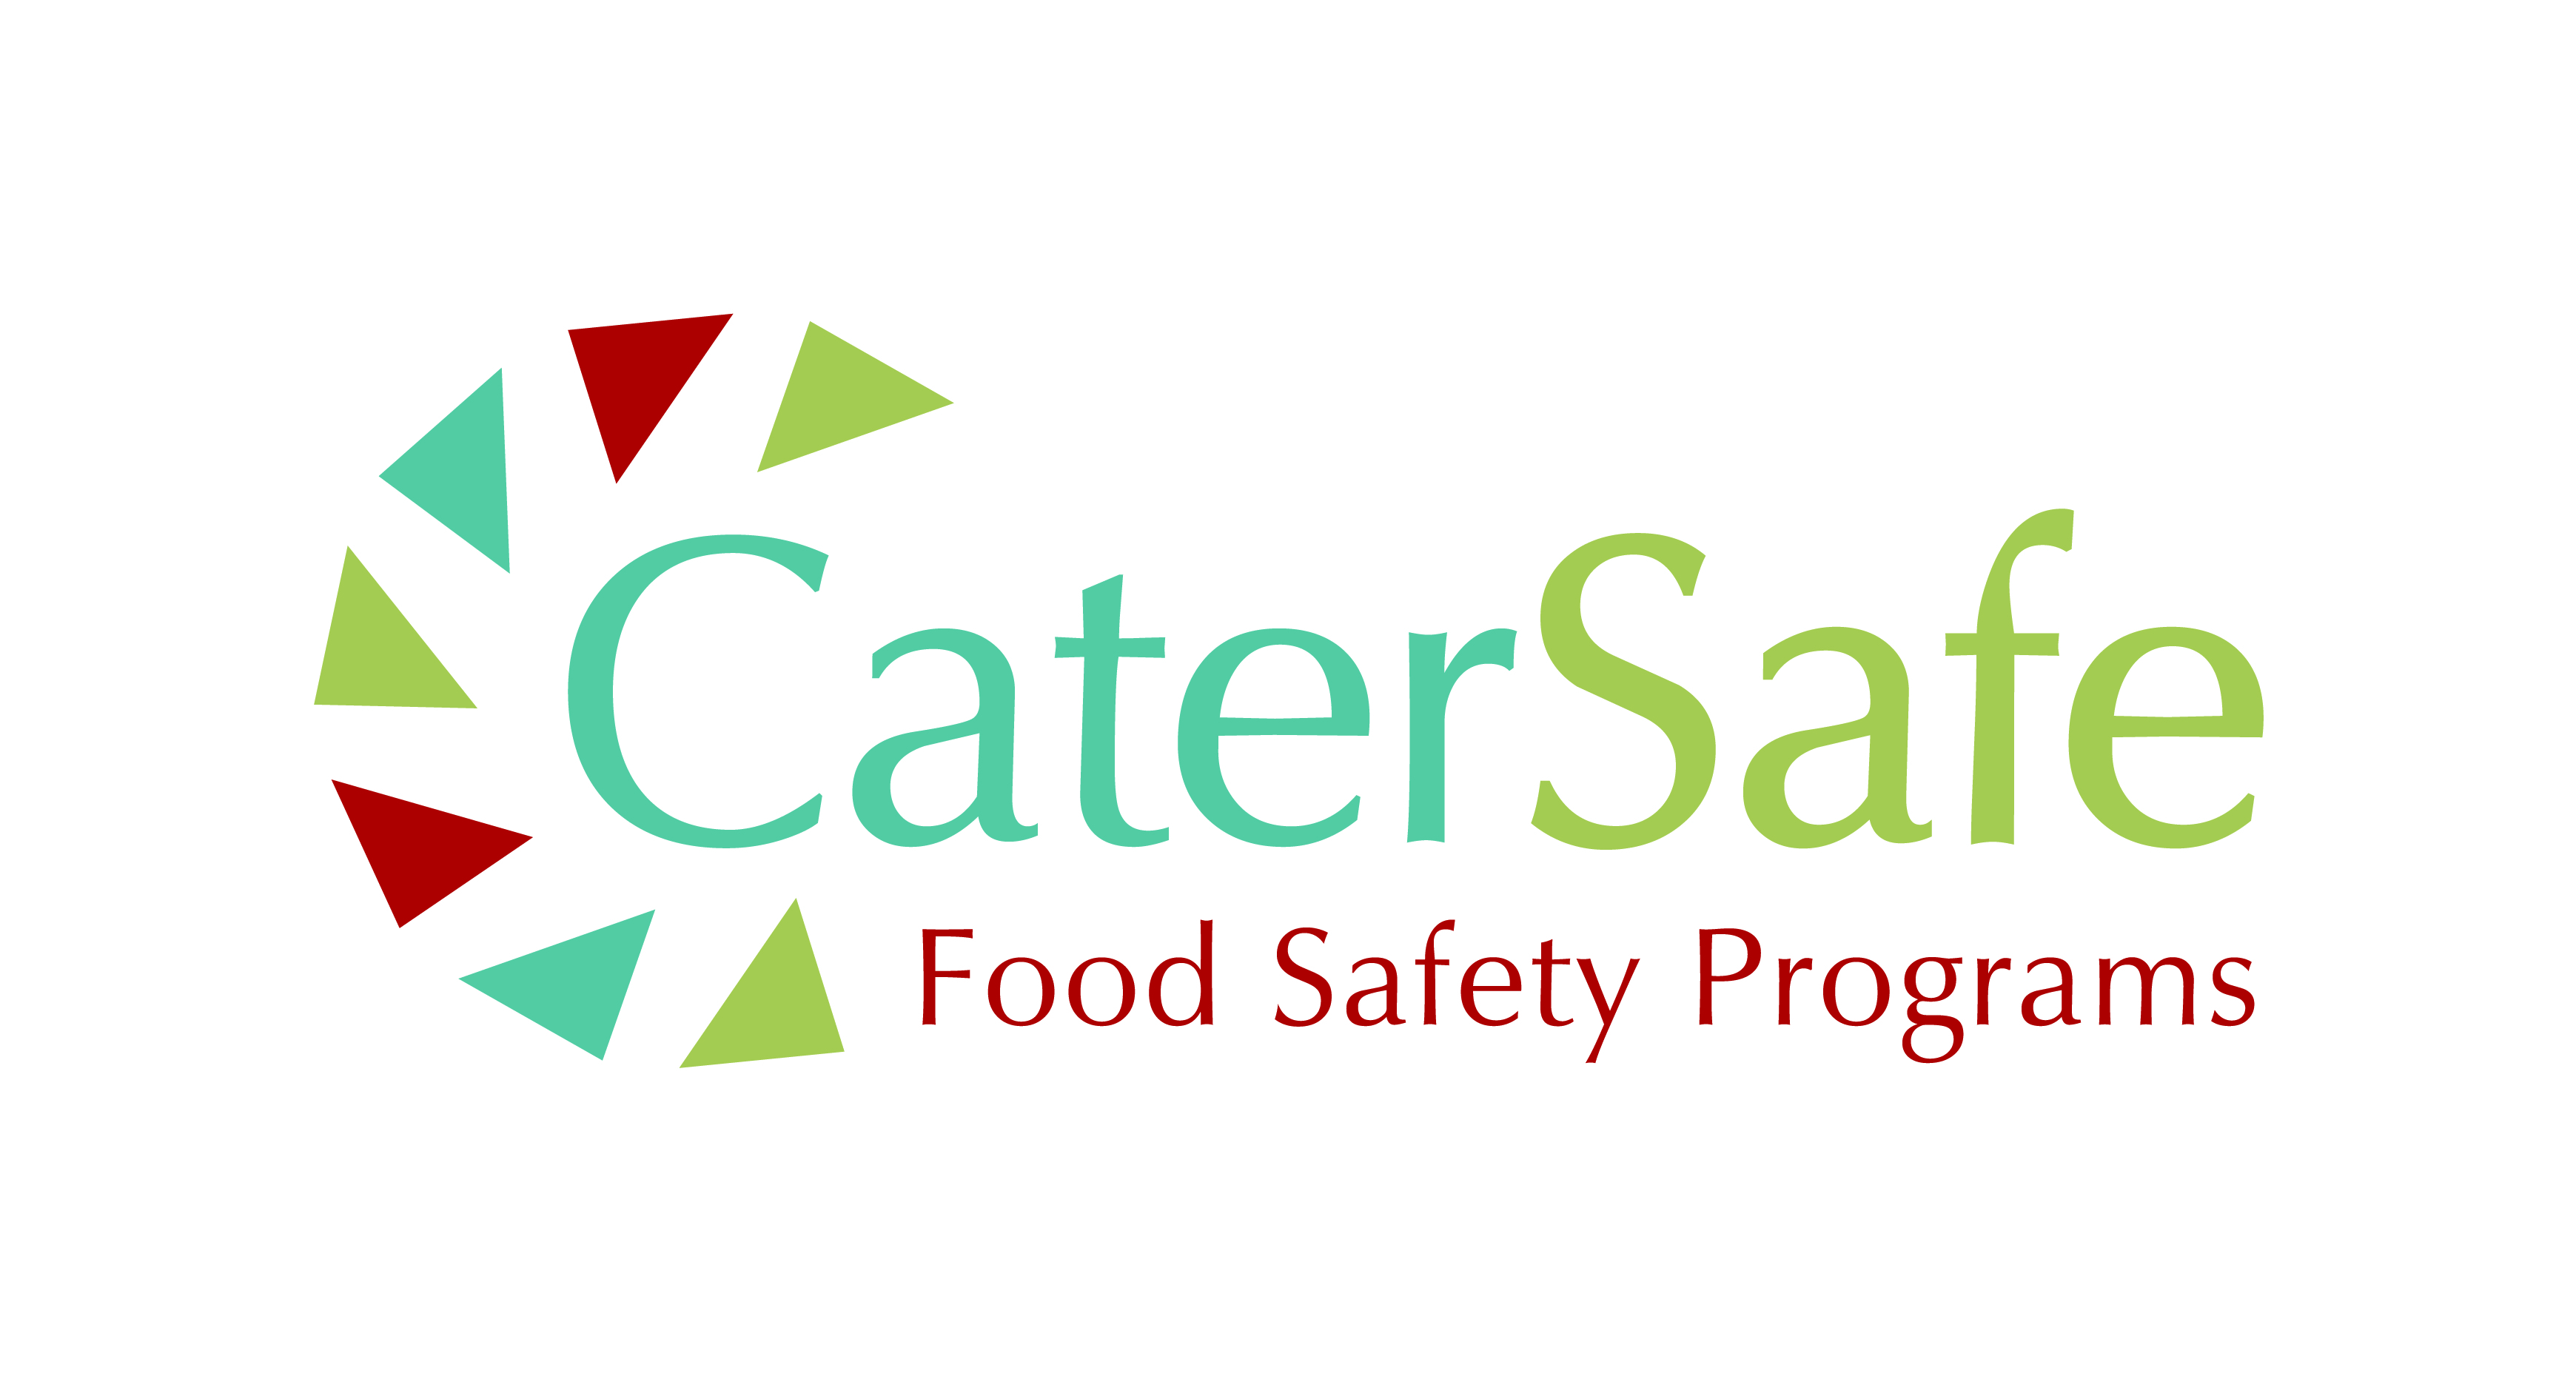 Catersafe Logo 002